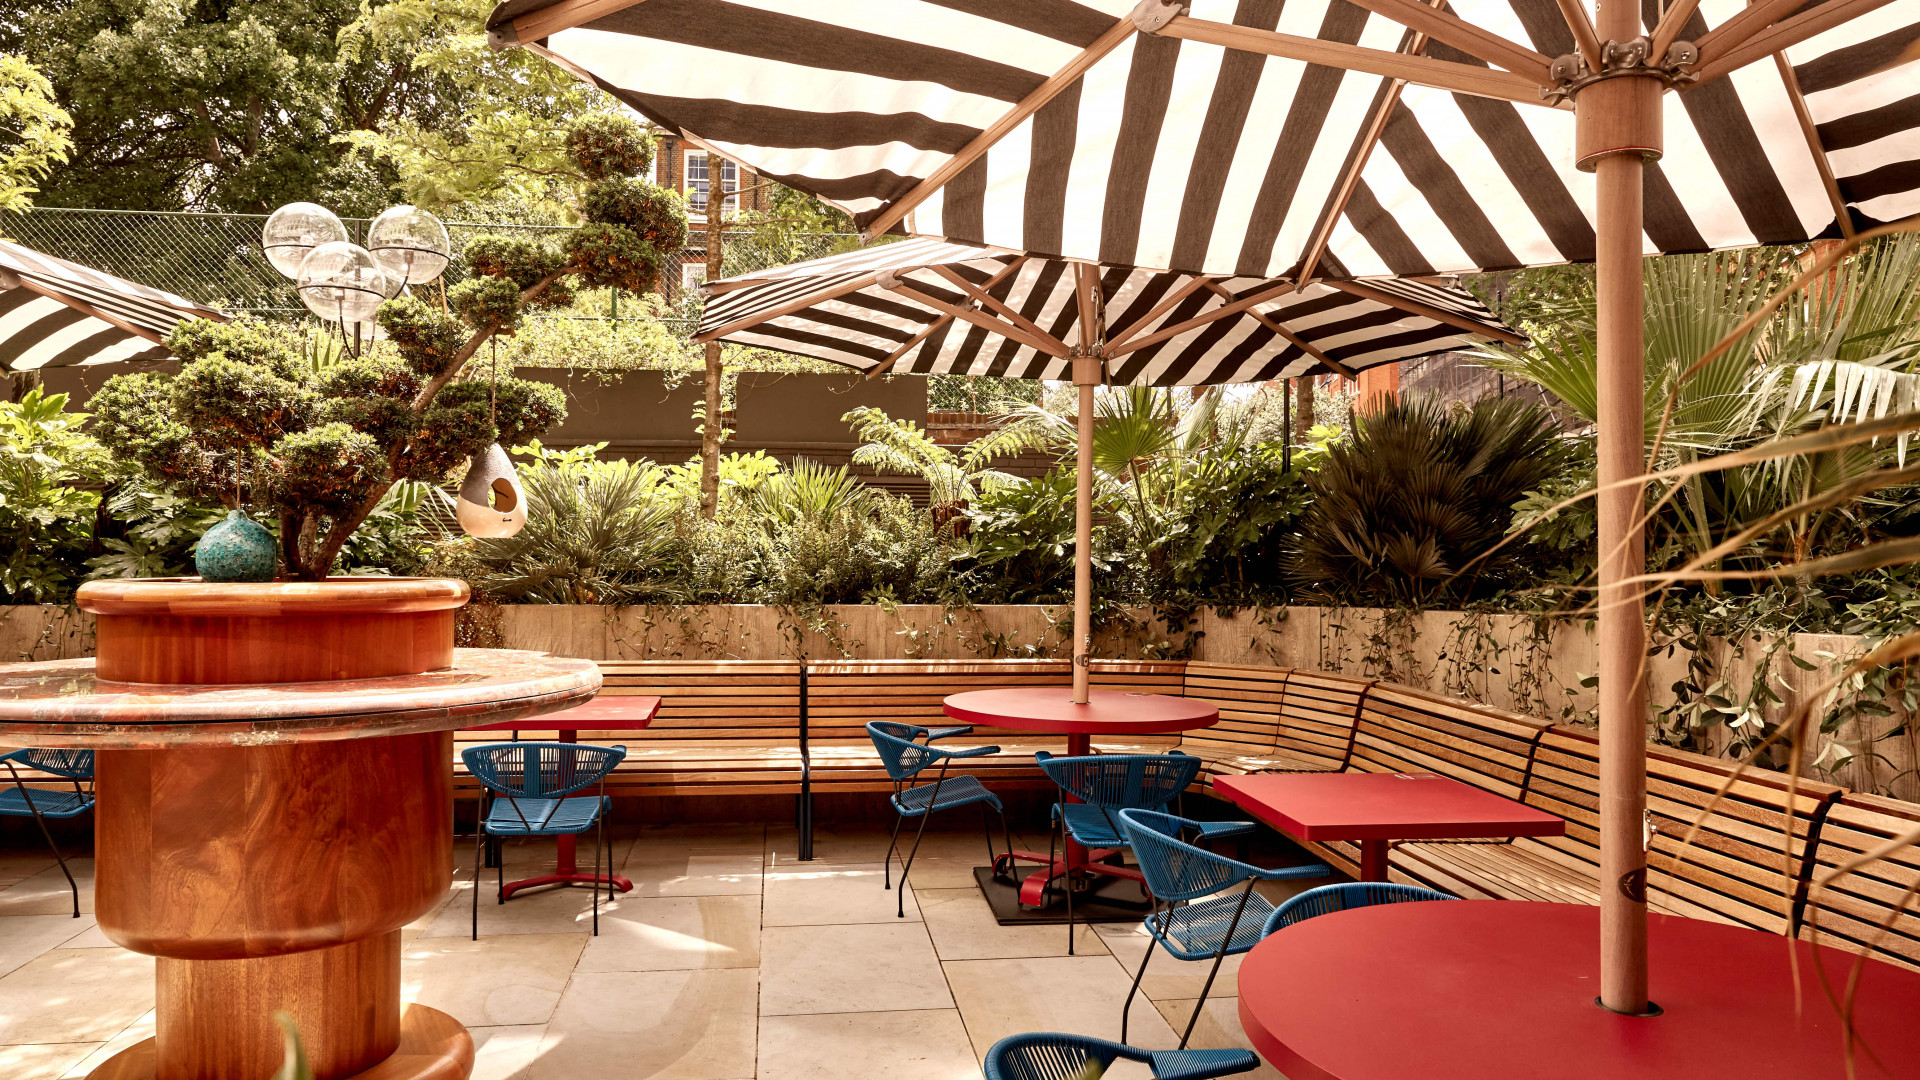 This is an image of the outdoor terrace at Double Standard at The Standard, London in King's Cross.